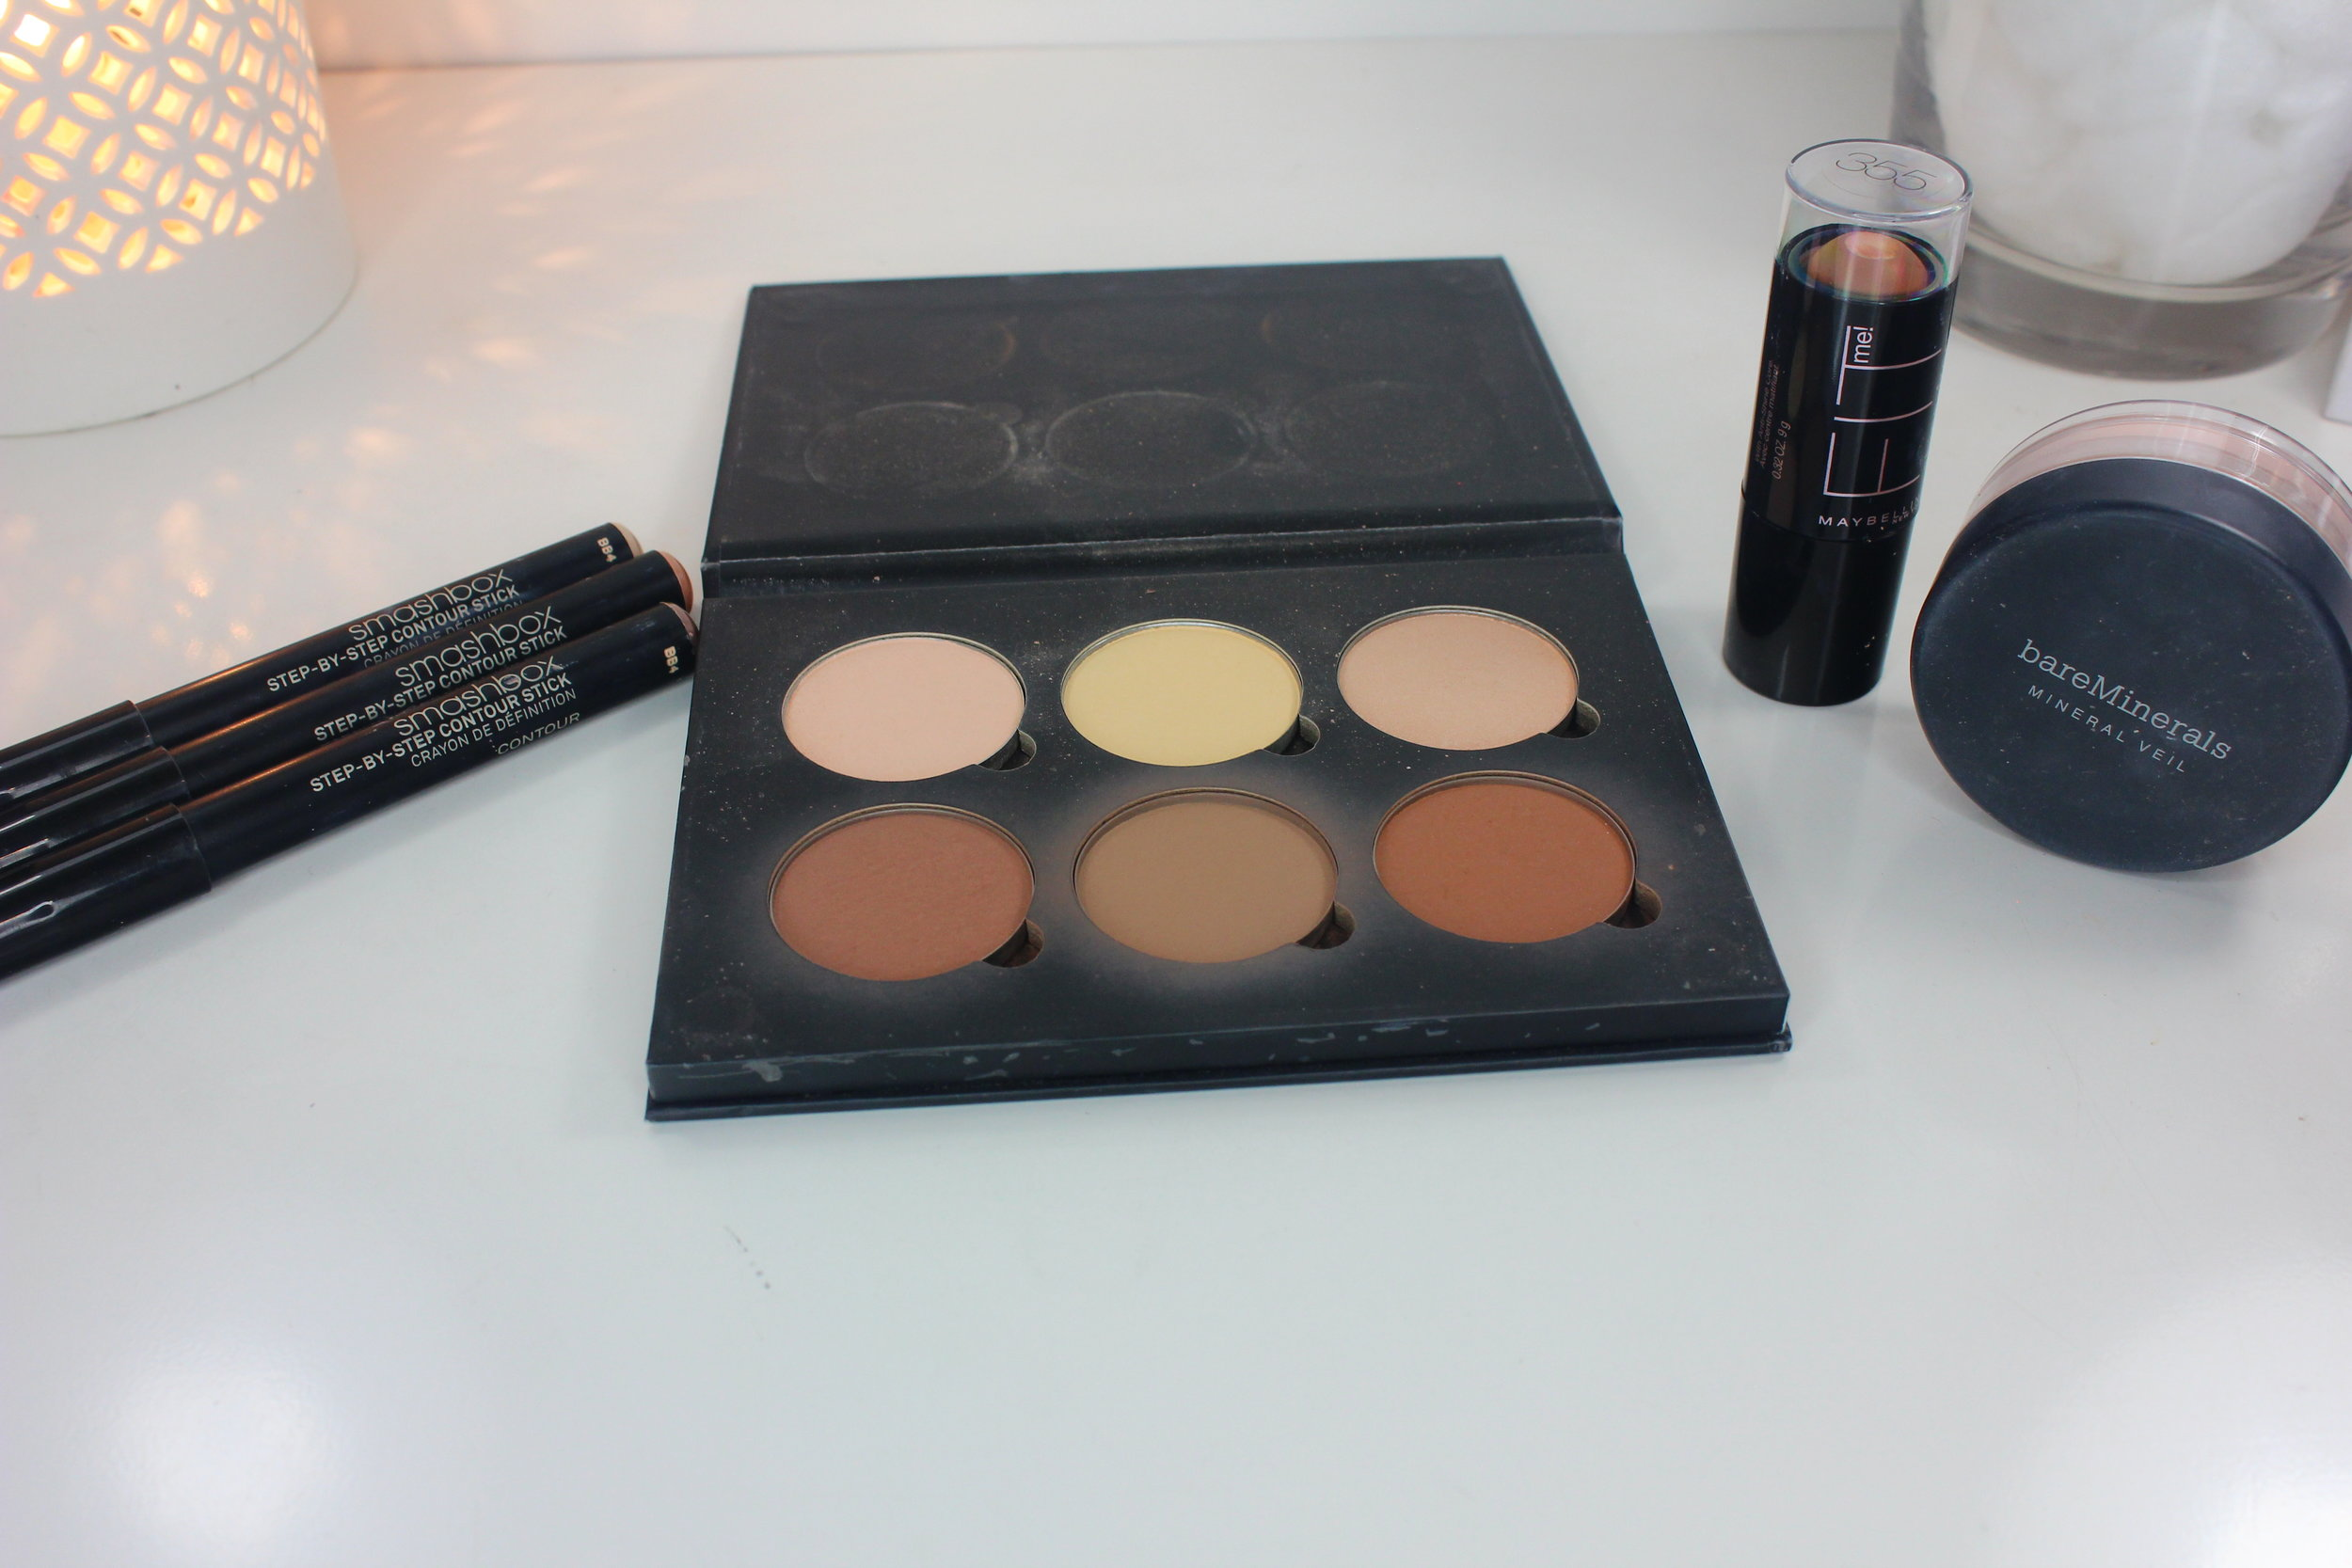 heat-proof, sweat-proof bulletproof makeup - highlighting and contouring long lasting